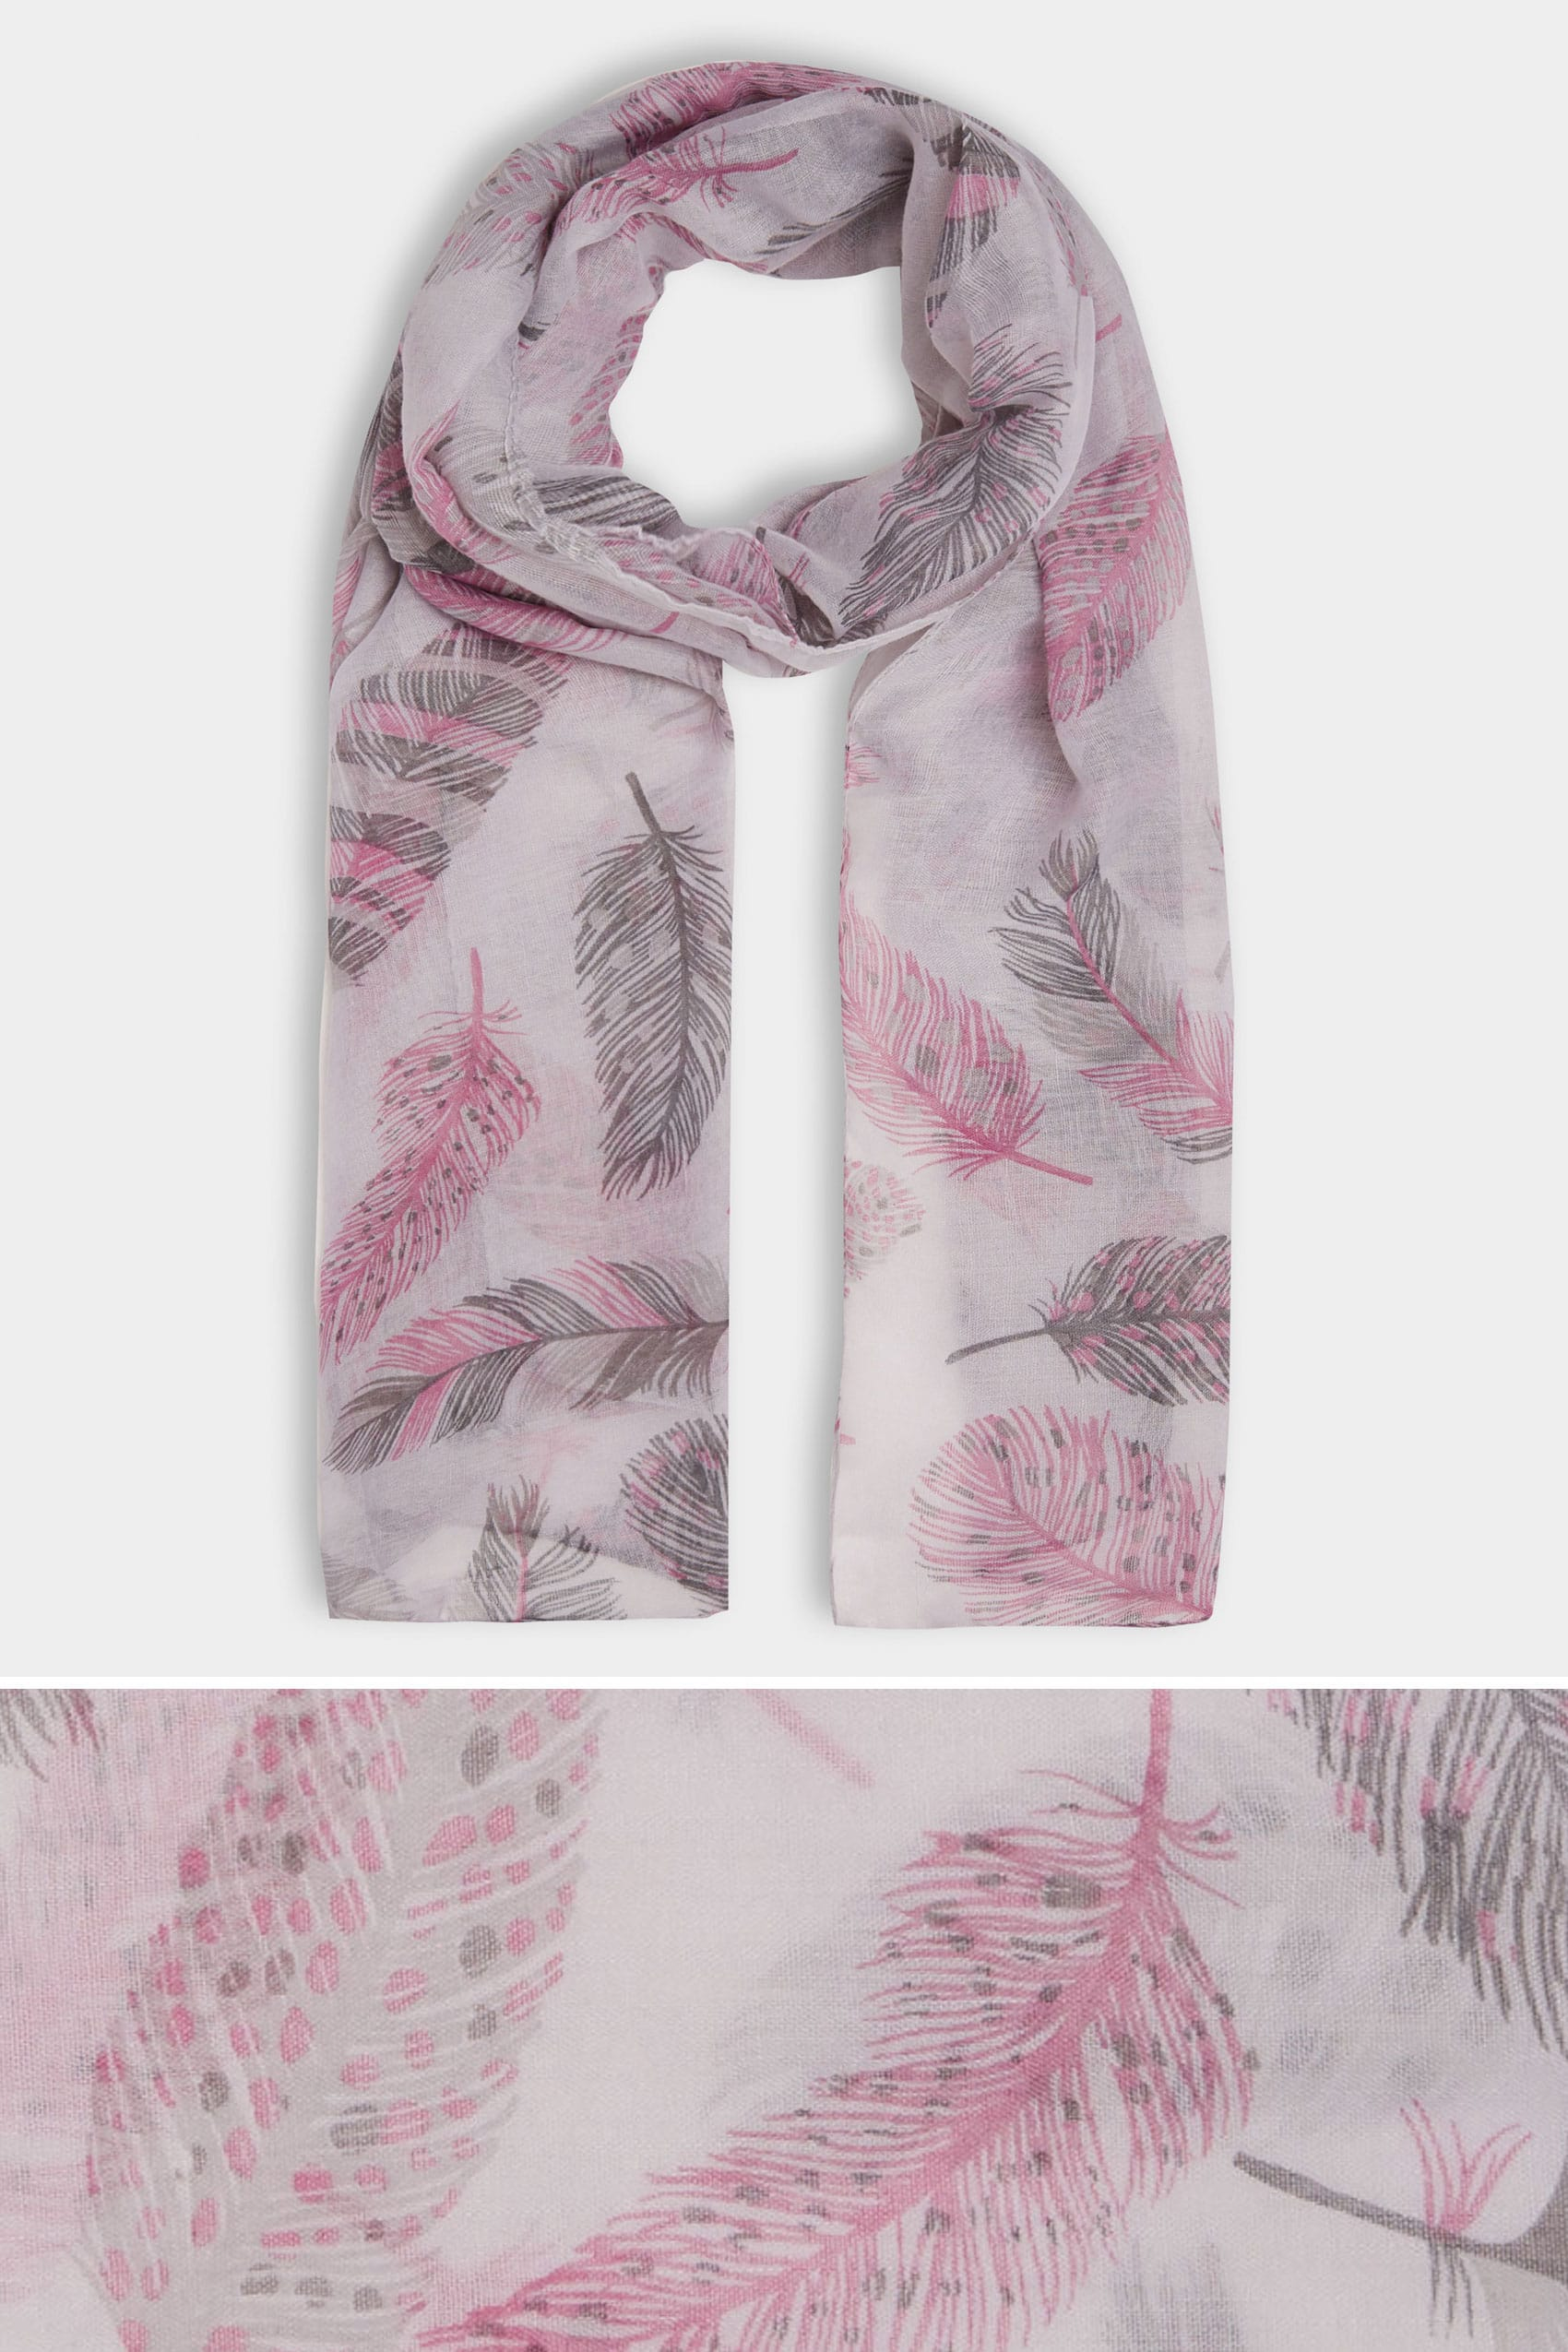 Grey And Pink Living Room Decor: Grey & Pink Feather Print Scarf